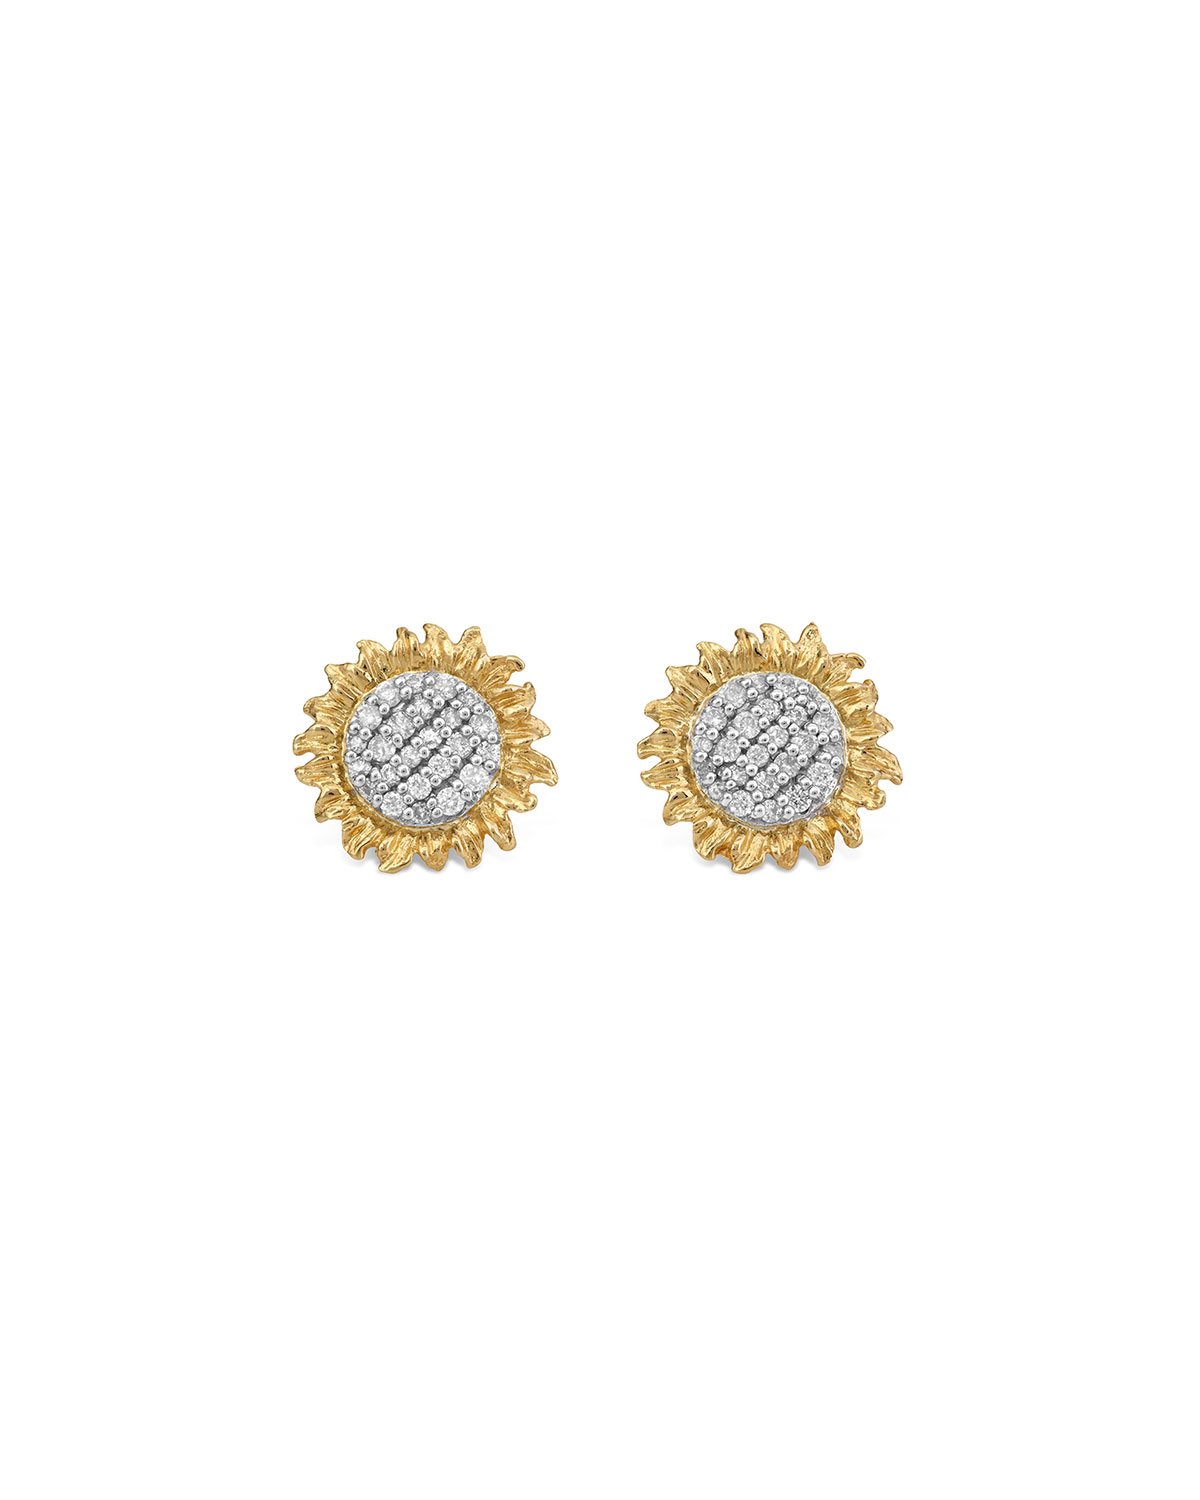 Michael Aram Vincent Diamond Stud Earrings, 11mm